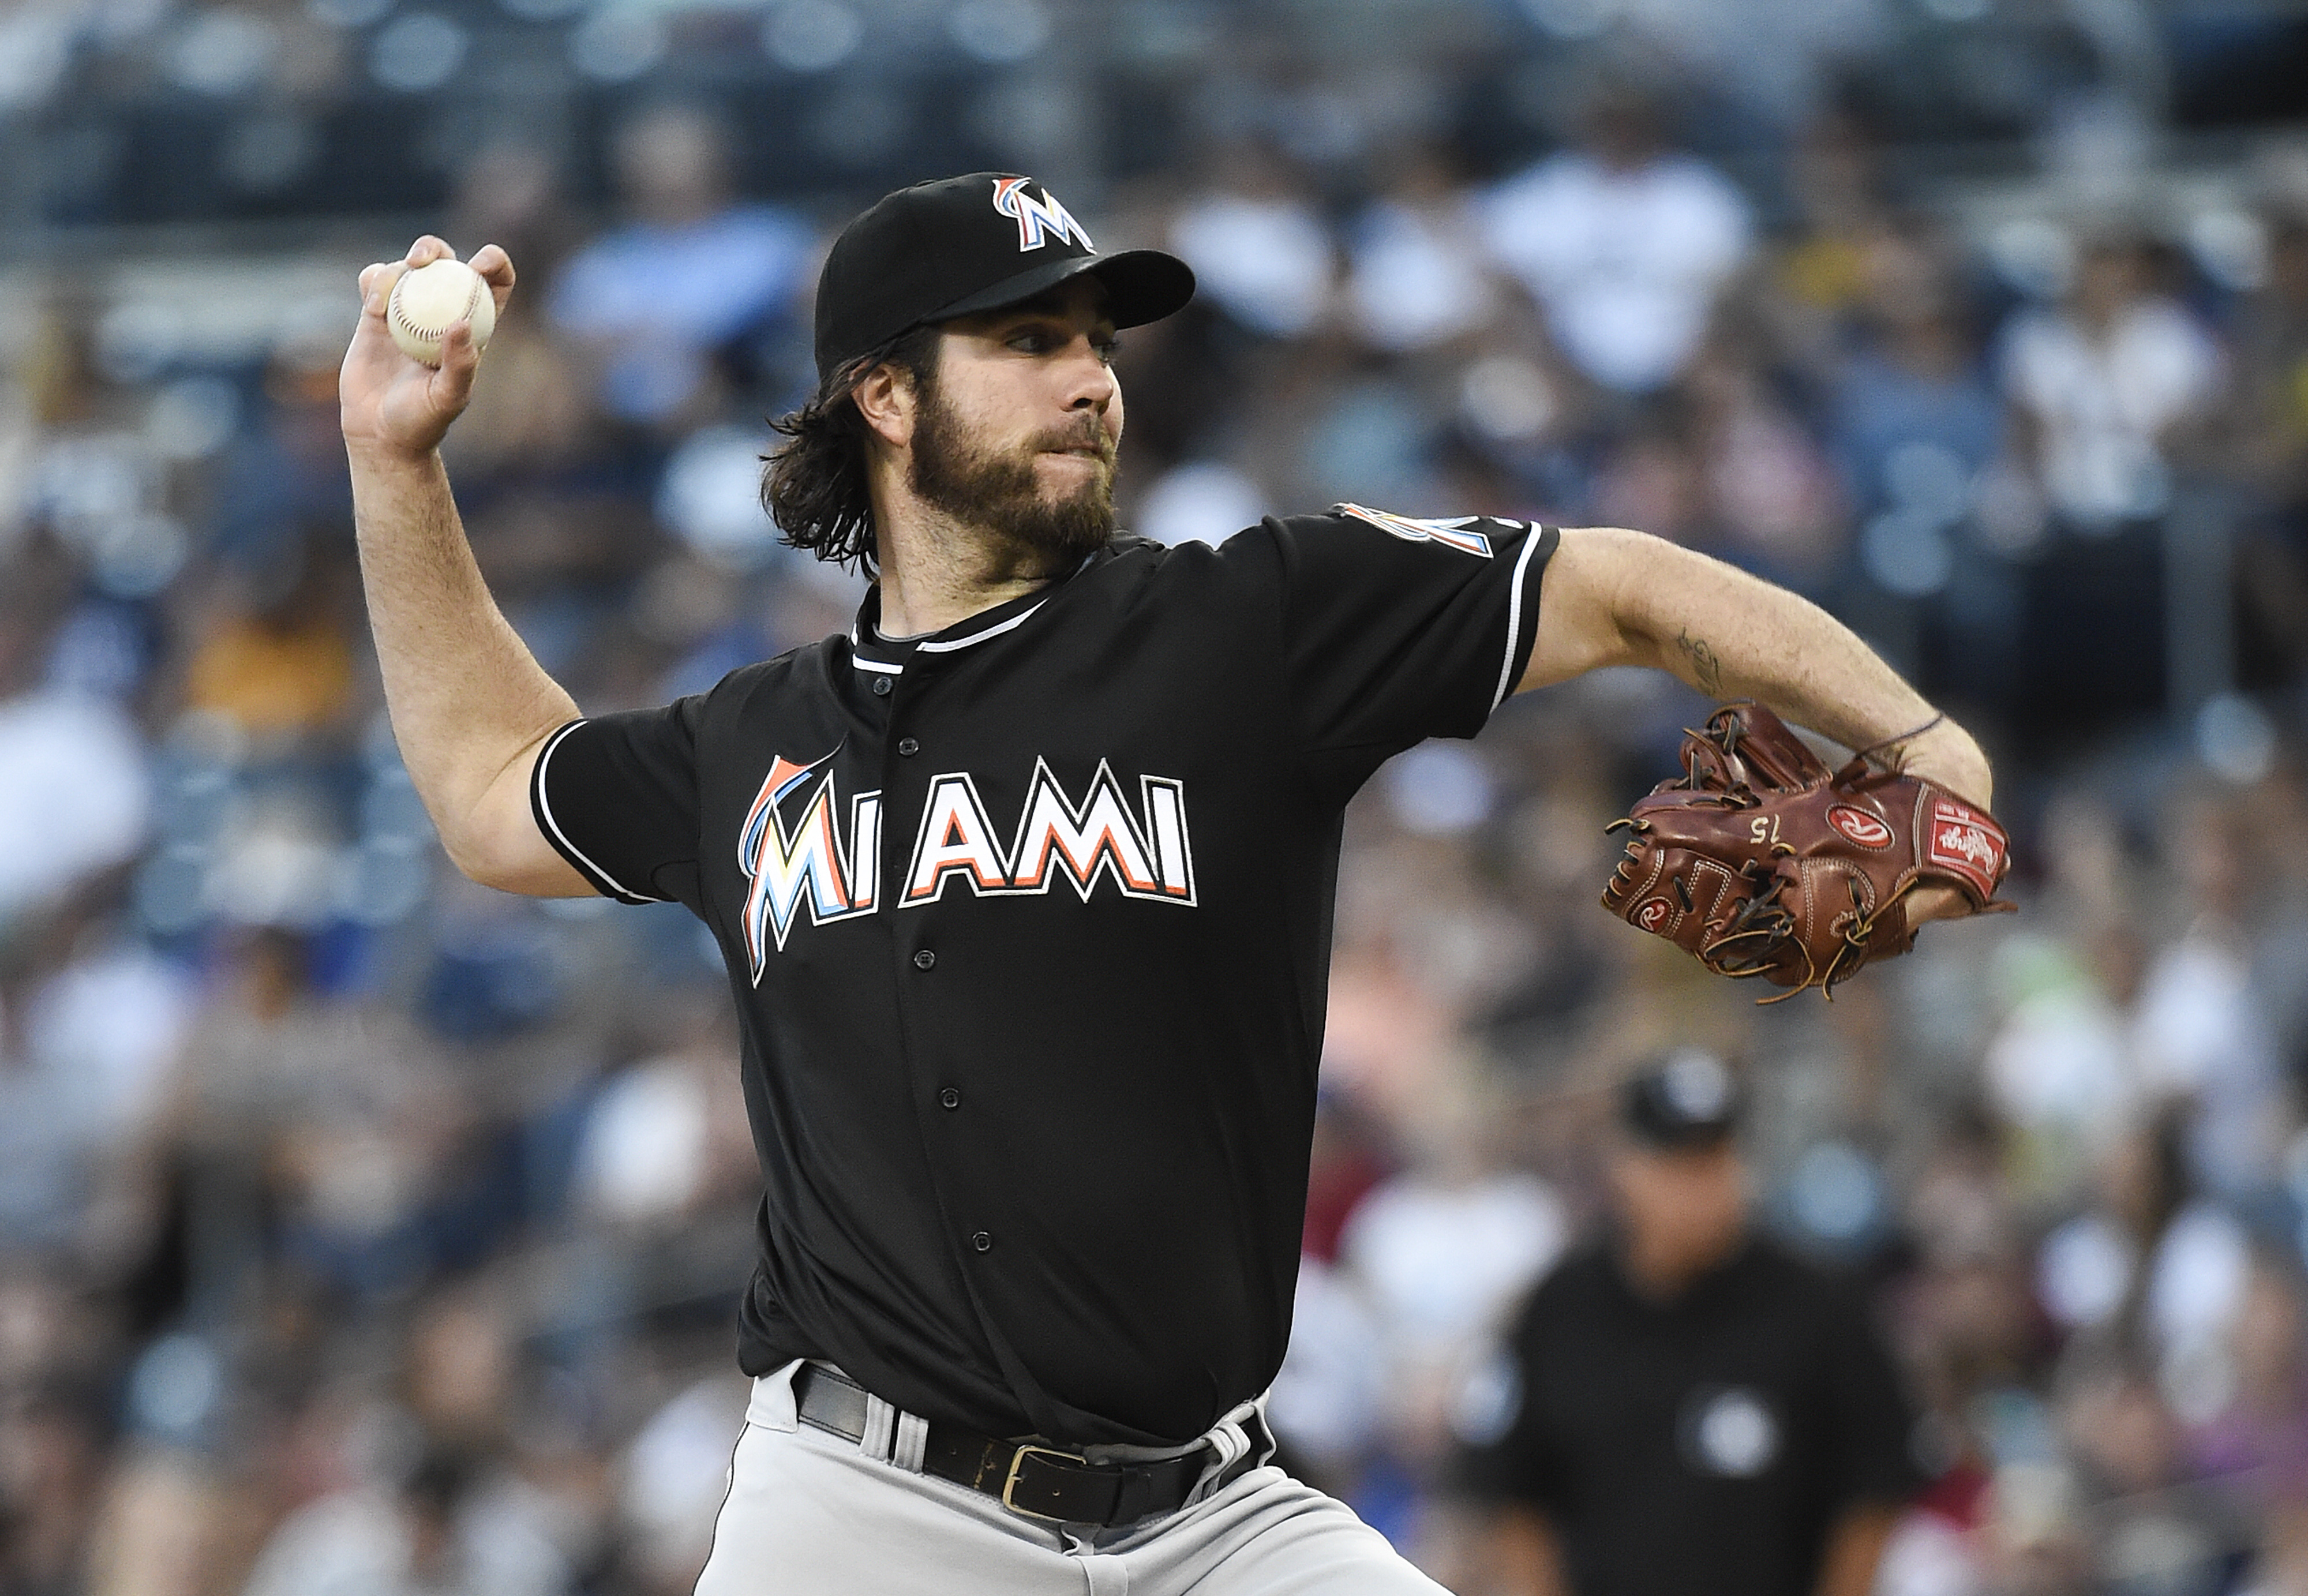 Dan Haren #15 of the Miami Marlins pitches during the first inning of a baseball game against the San Diego Padres at Petco Park July 24, 2015 in San Diego, California.  (Photo by Denis Poroy/Getty Images)